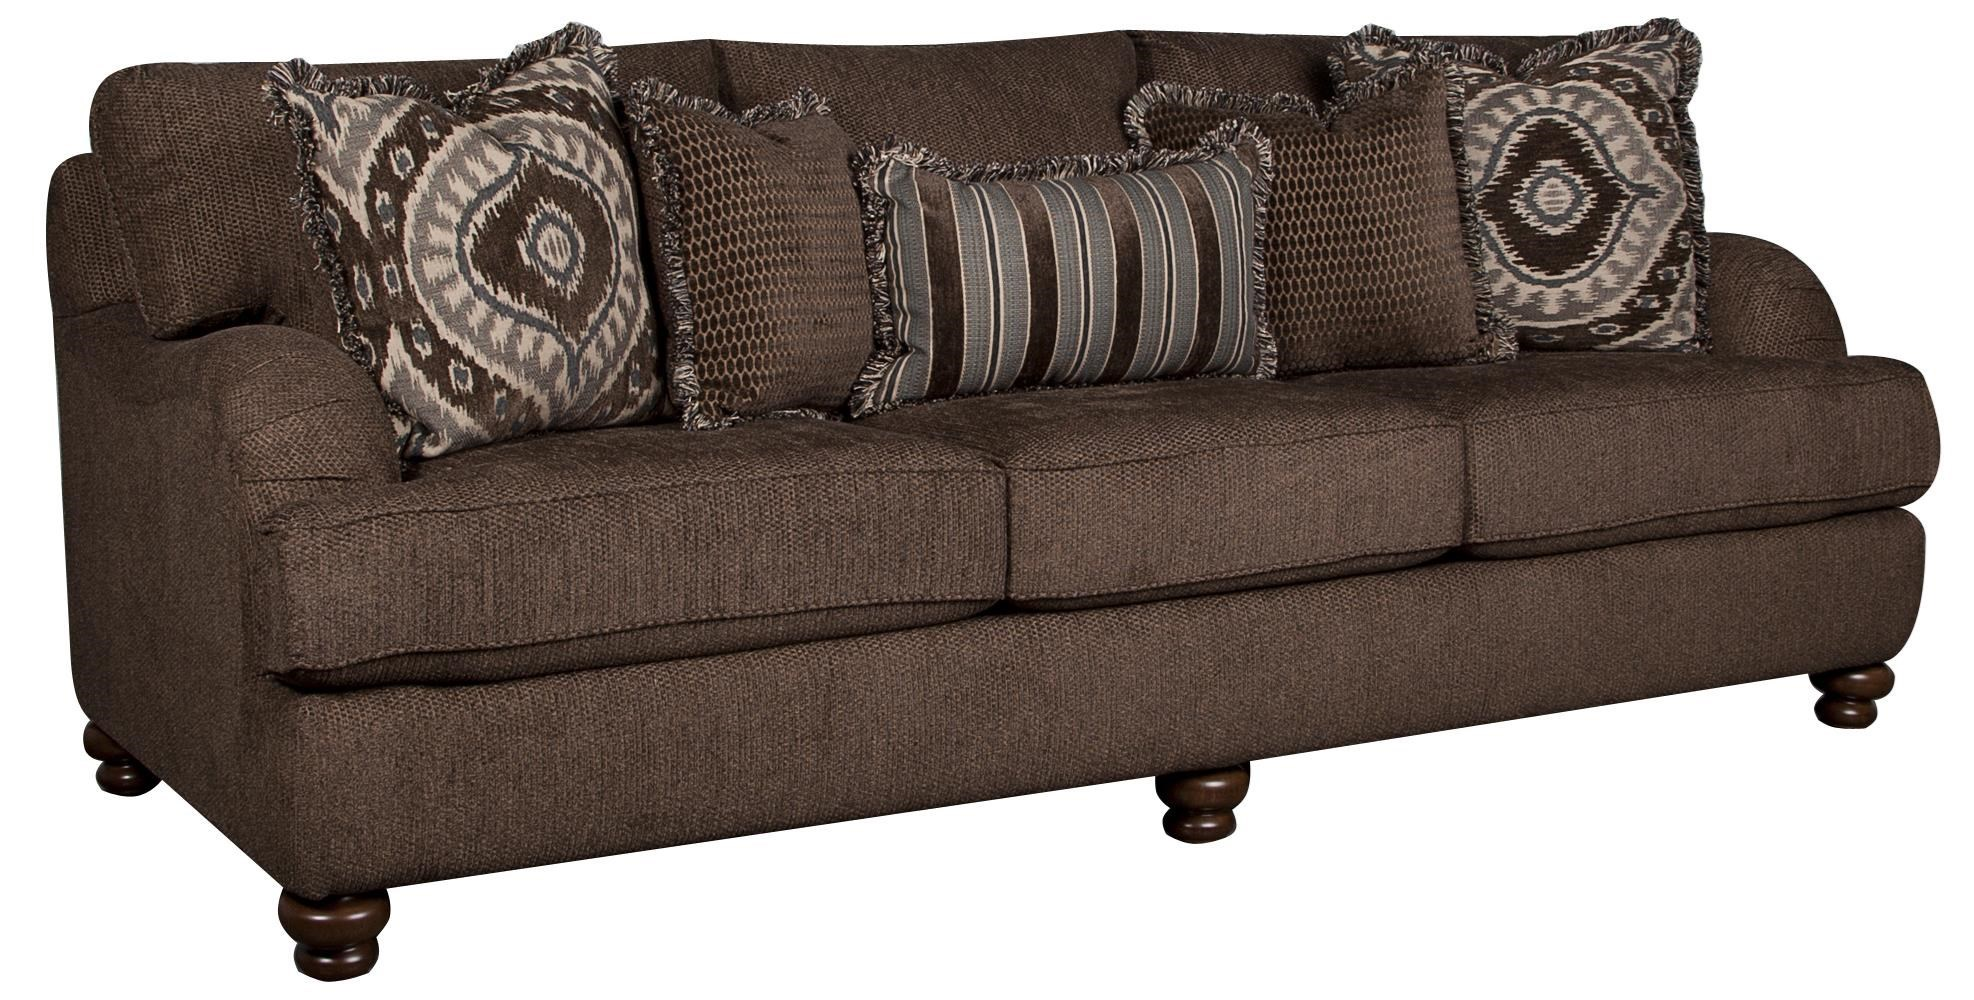 Awesome Elliston Place KendallKendall Classic Sofa; Elliston Place KendallKendall  Classic Sofa ...